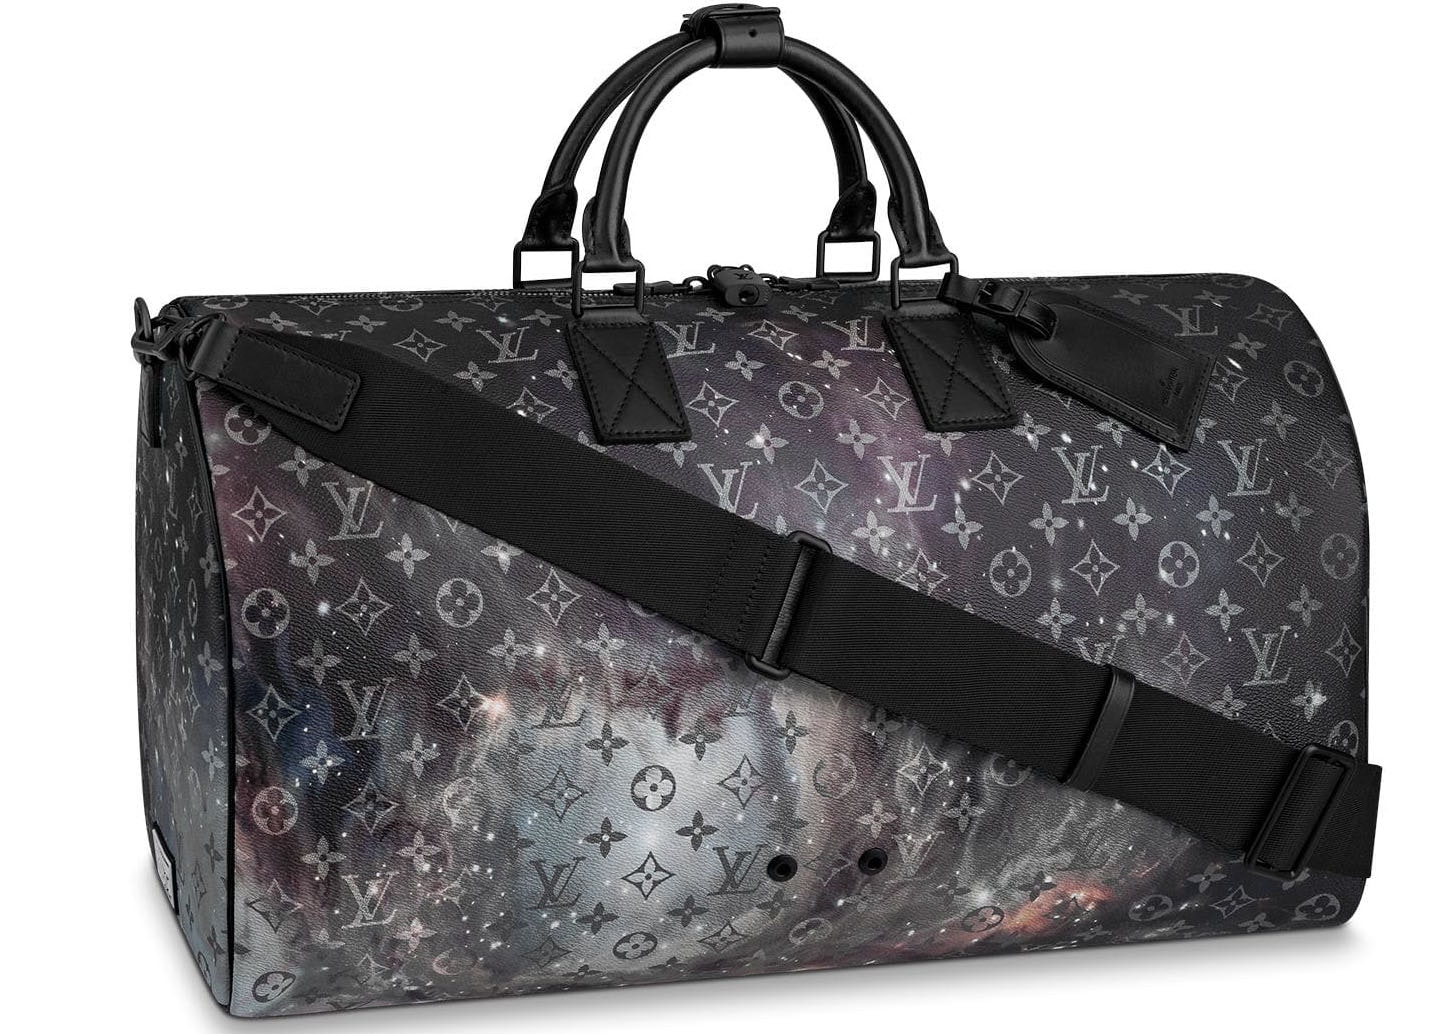 Louis Vuitton Keepall Bandouliere Monogram Galaxy 50 Black Multicolor